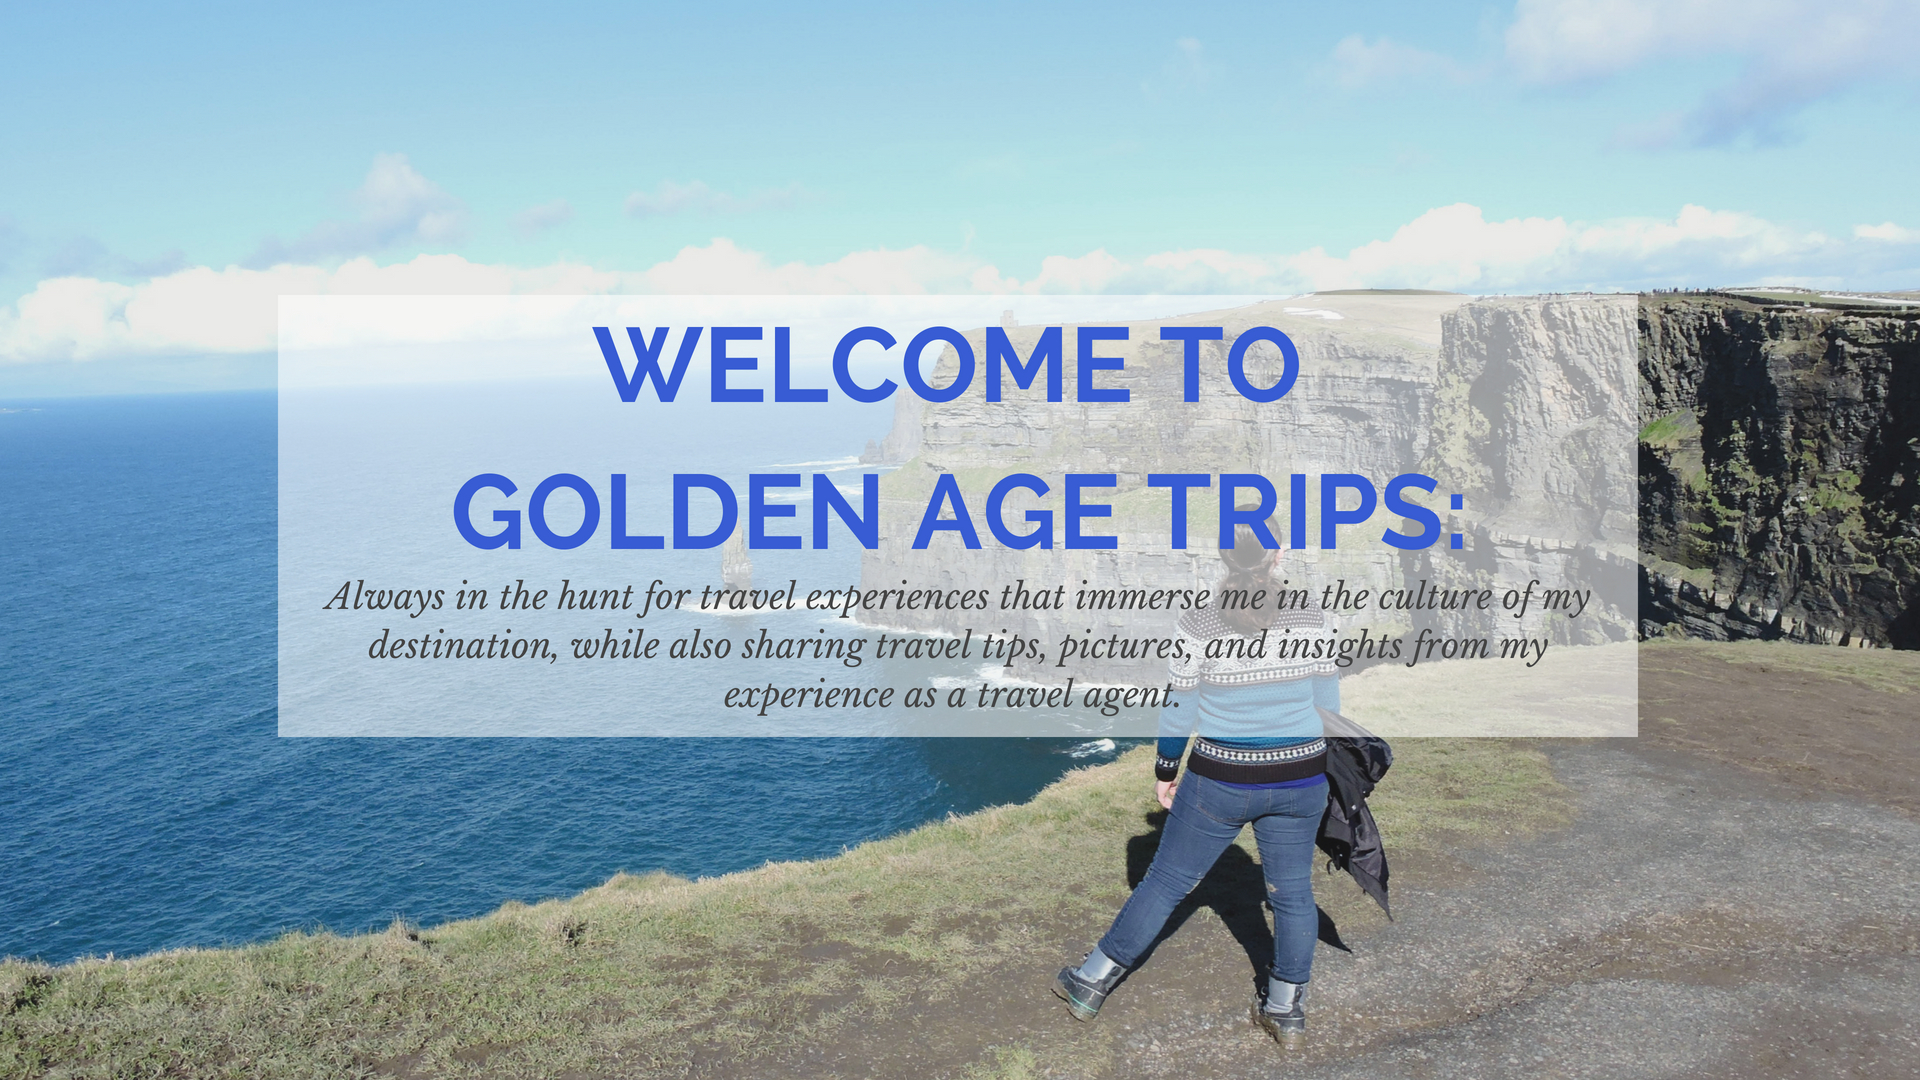 Golden Age Trips Travel Experiences Intergenerational Approved